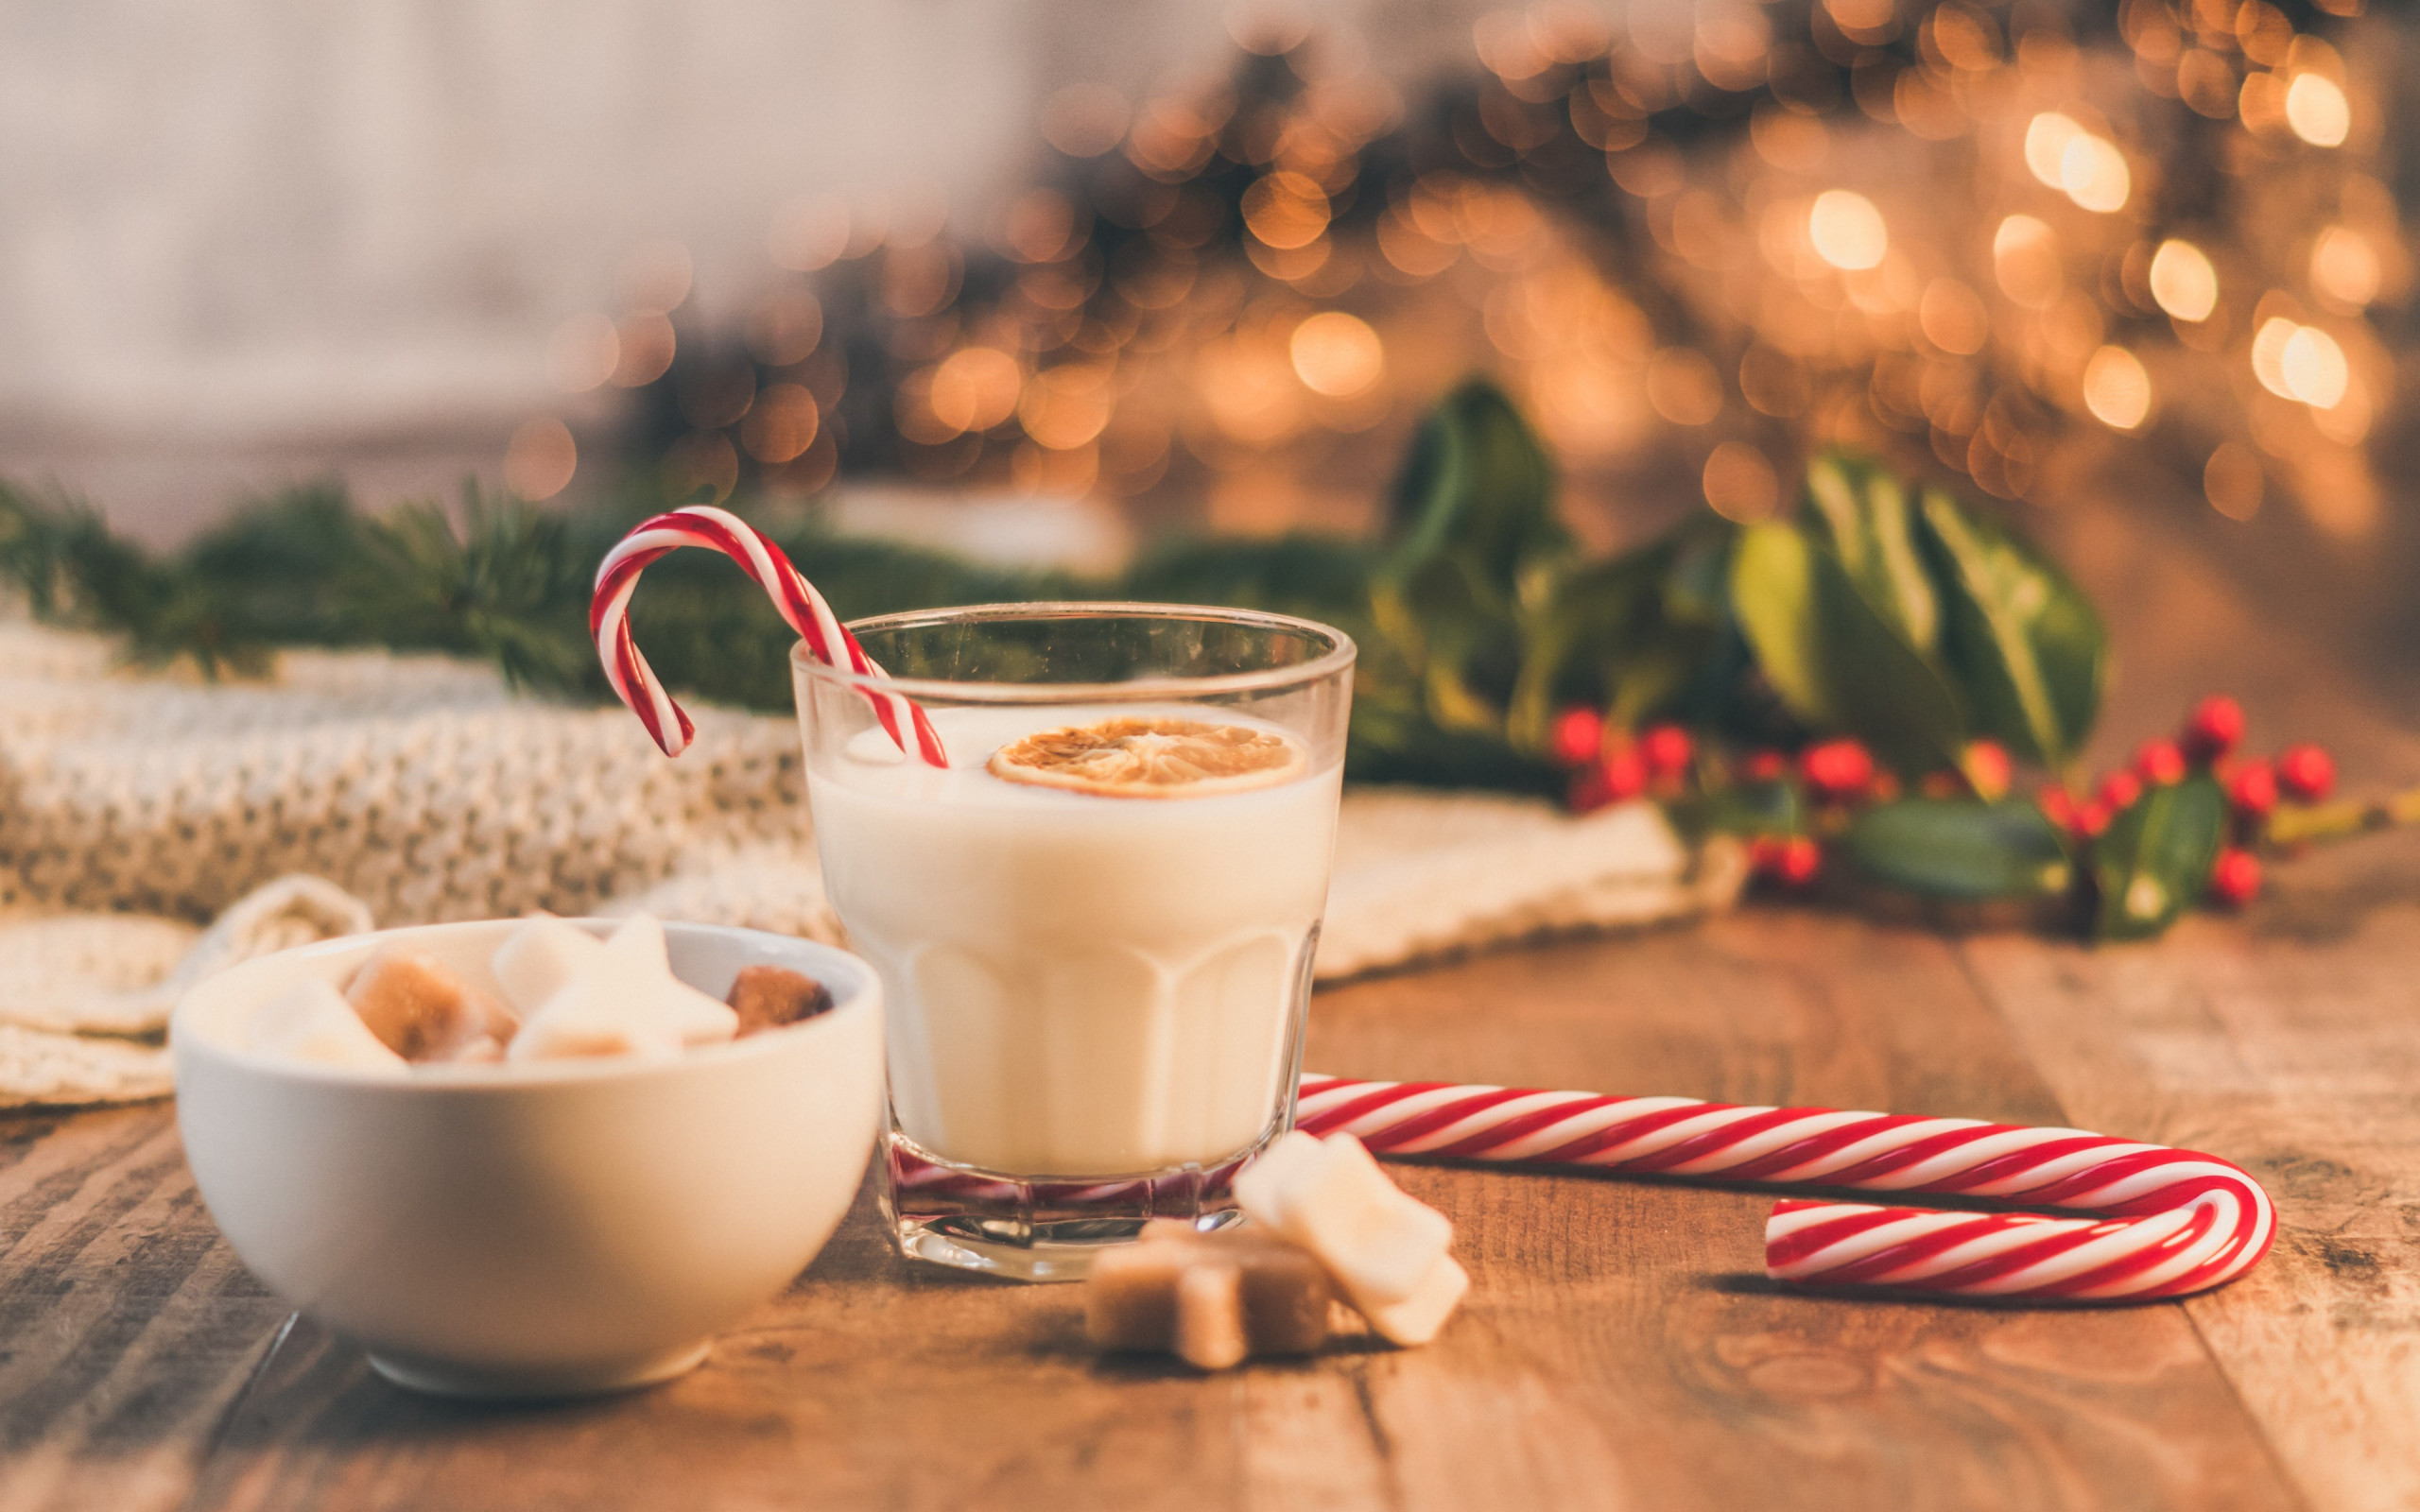 Seasonal Christmas sweets and cup of milk wallpaper 2560x1600